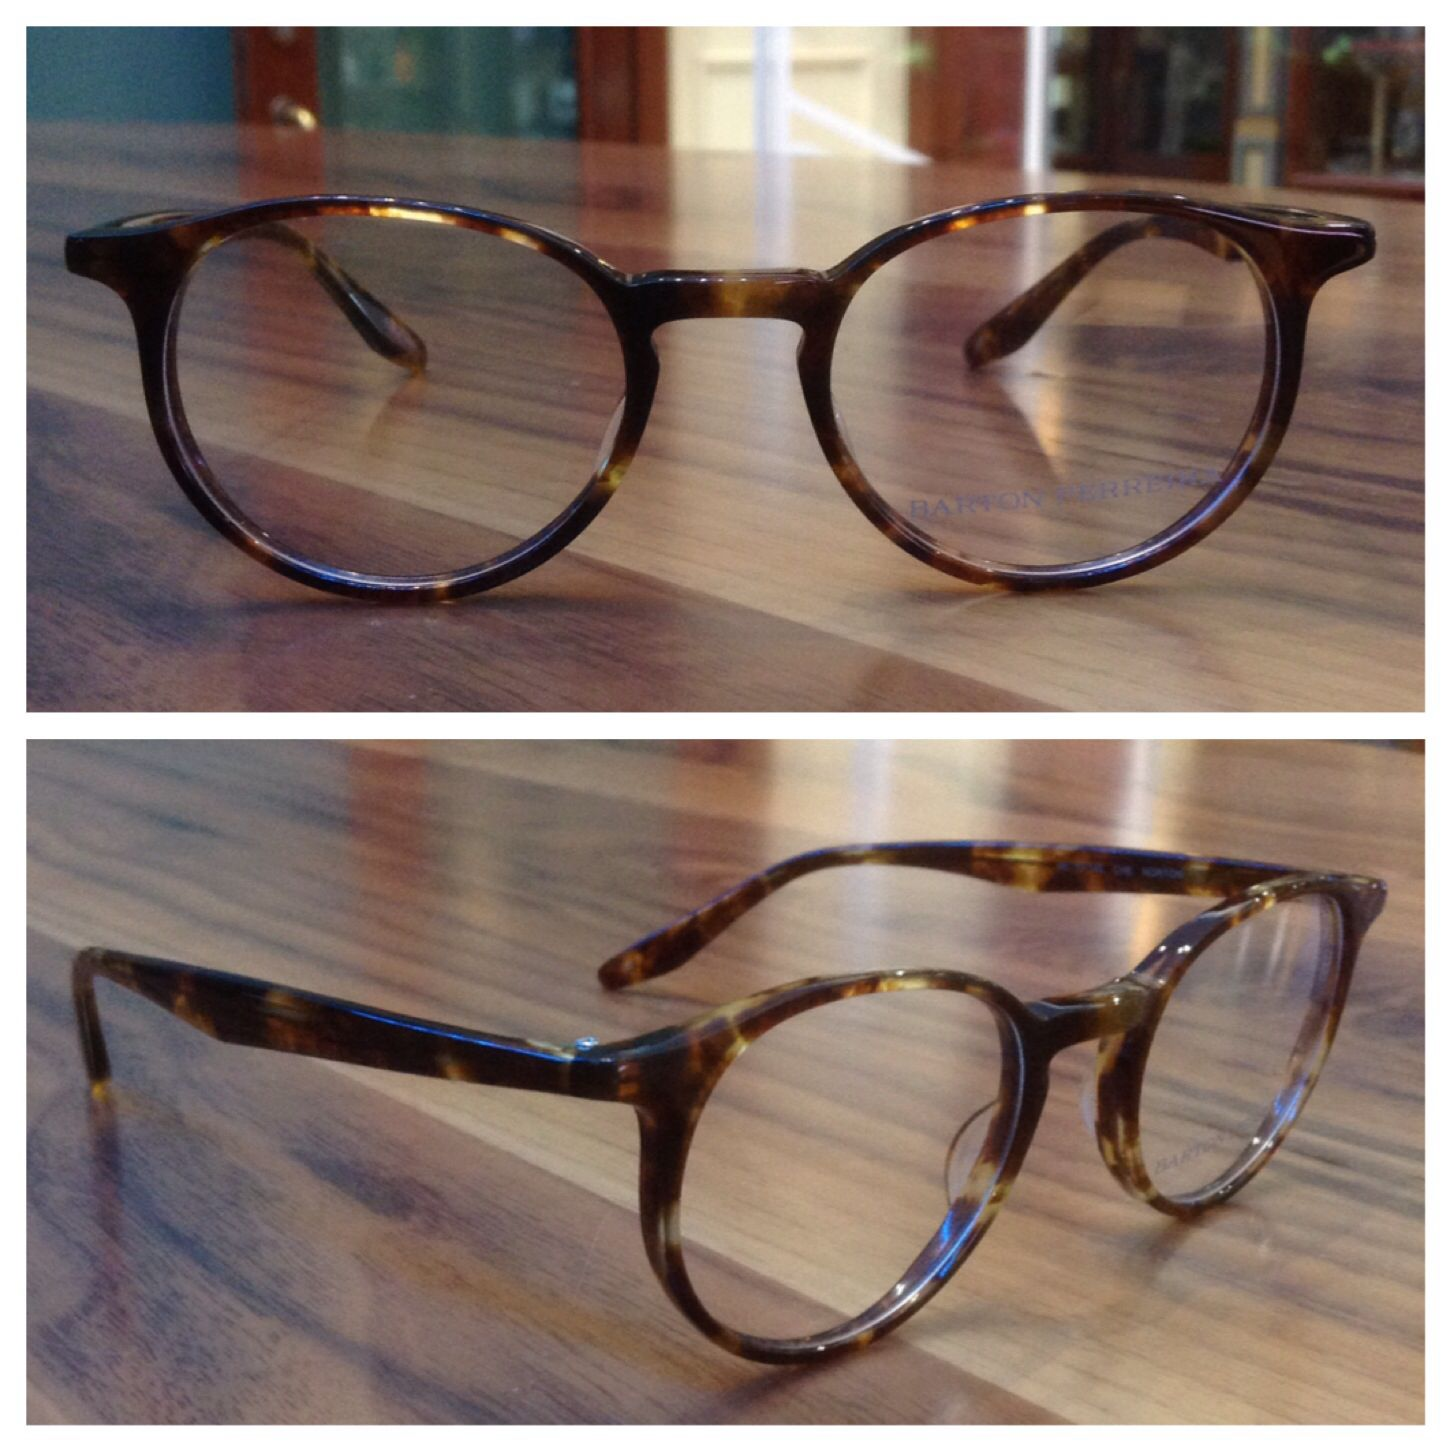 'Norton' in Chestnut. $425.00 at The Pinhole Effect.